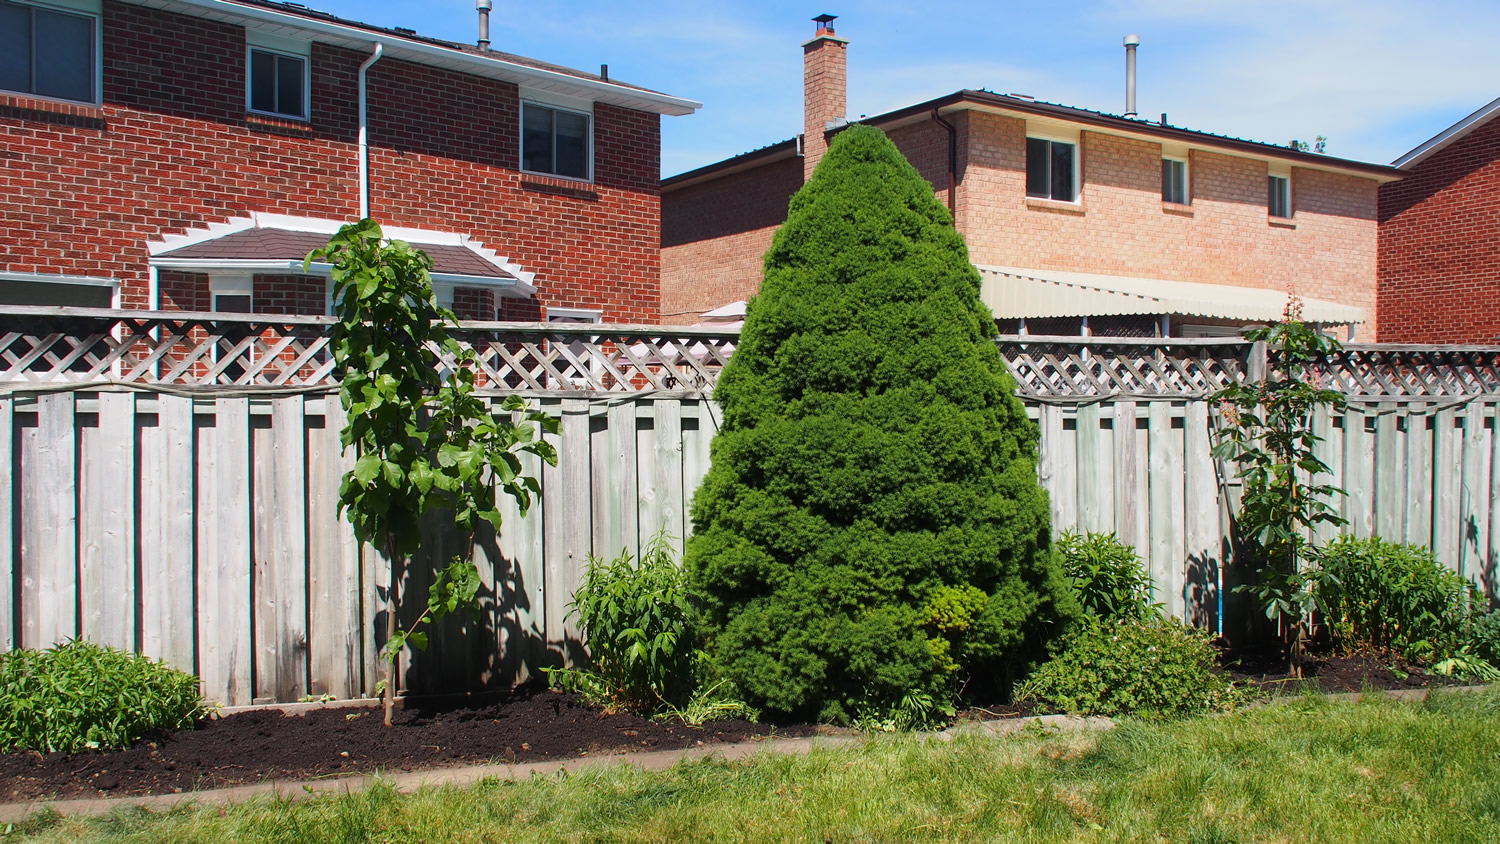 Back Right Garden - After